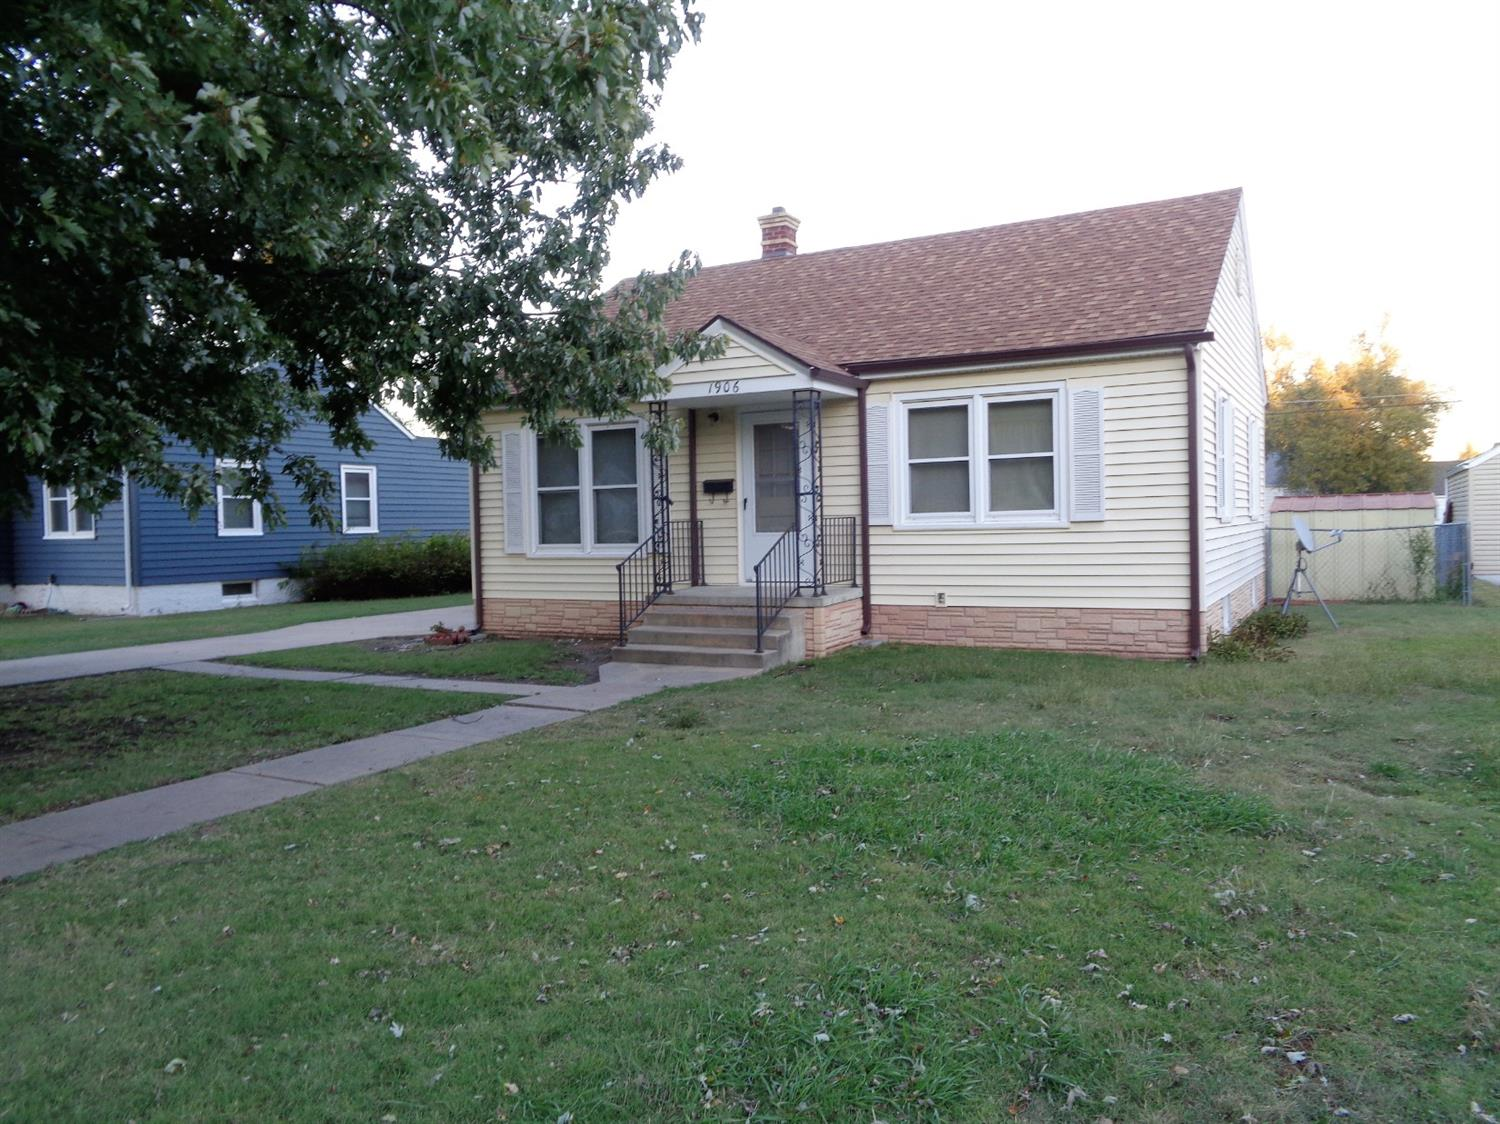 This home features replacement windows throughout home including basement. 2 bed/1 bath home with hardwood floors under carpet. Maintenance free exterior.